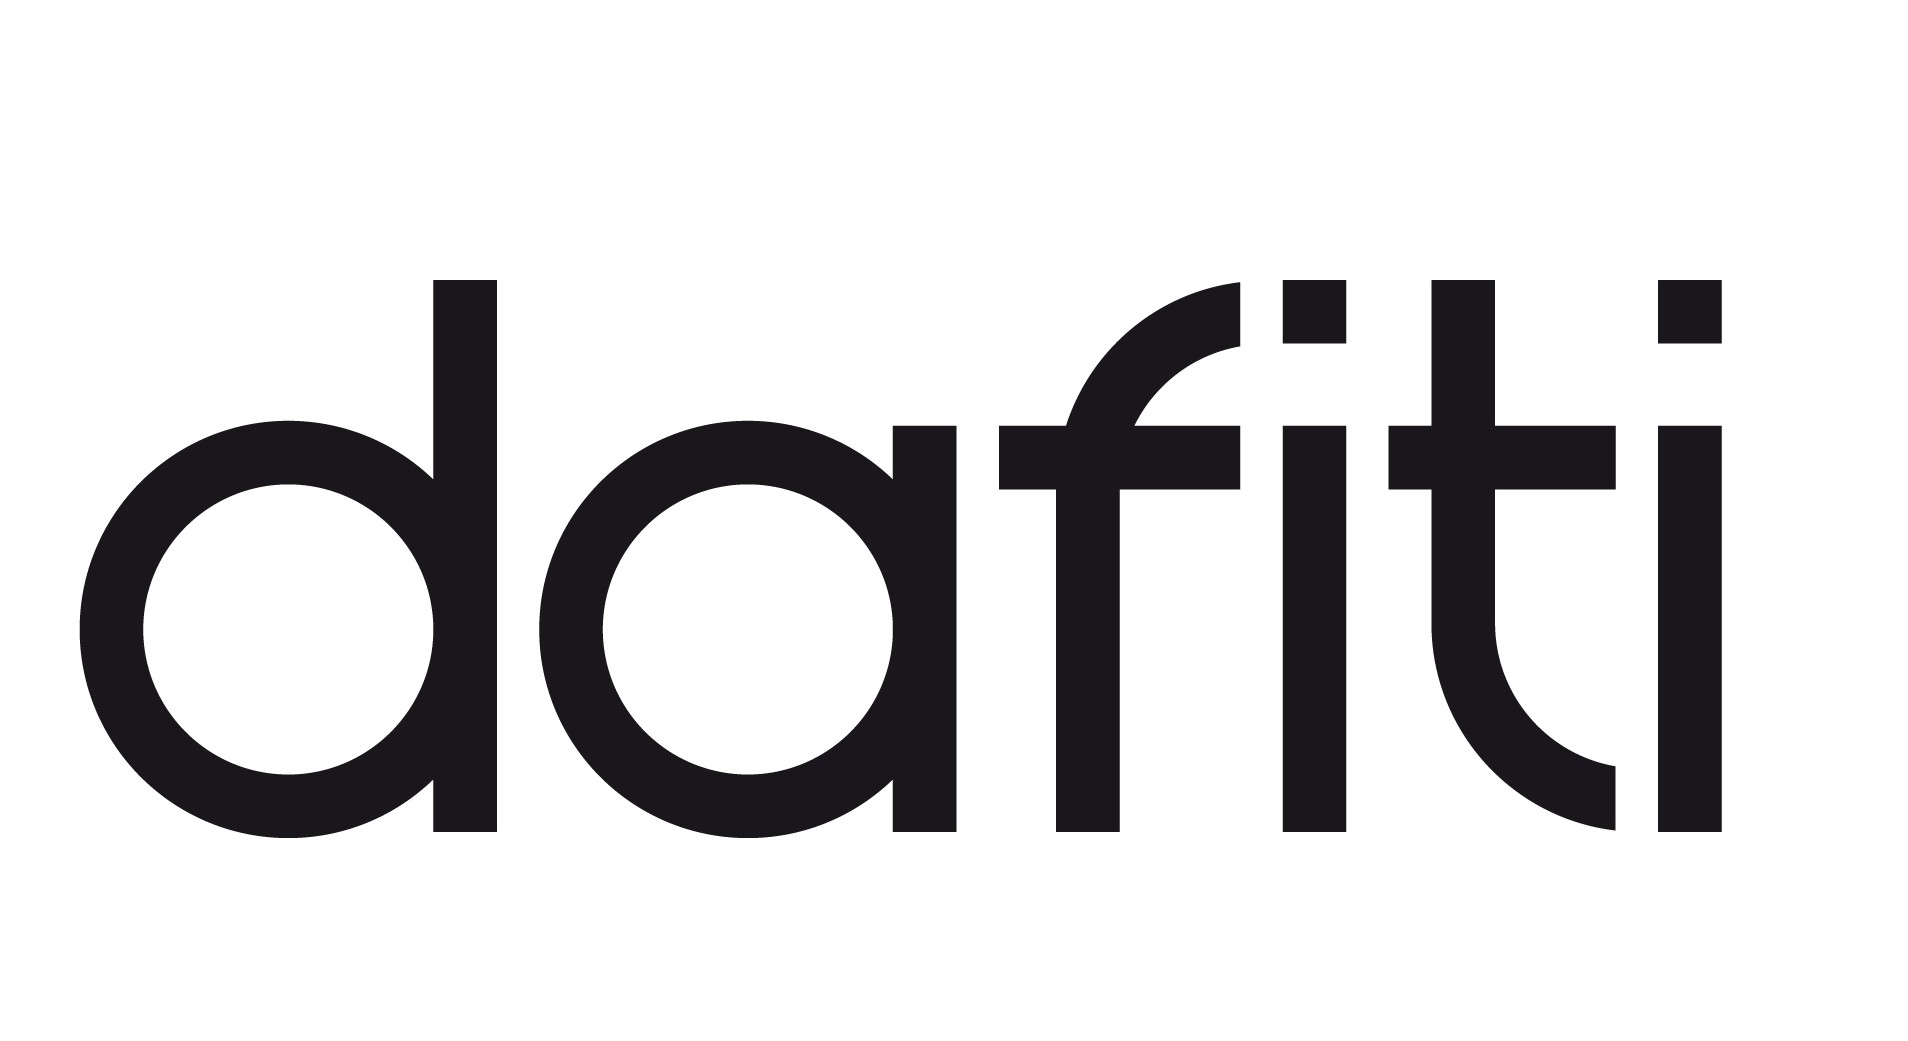 Rocket Internet's Dafiti and the Future of LatAm E-Commerce